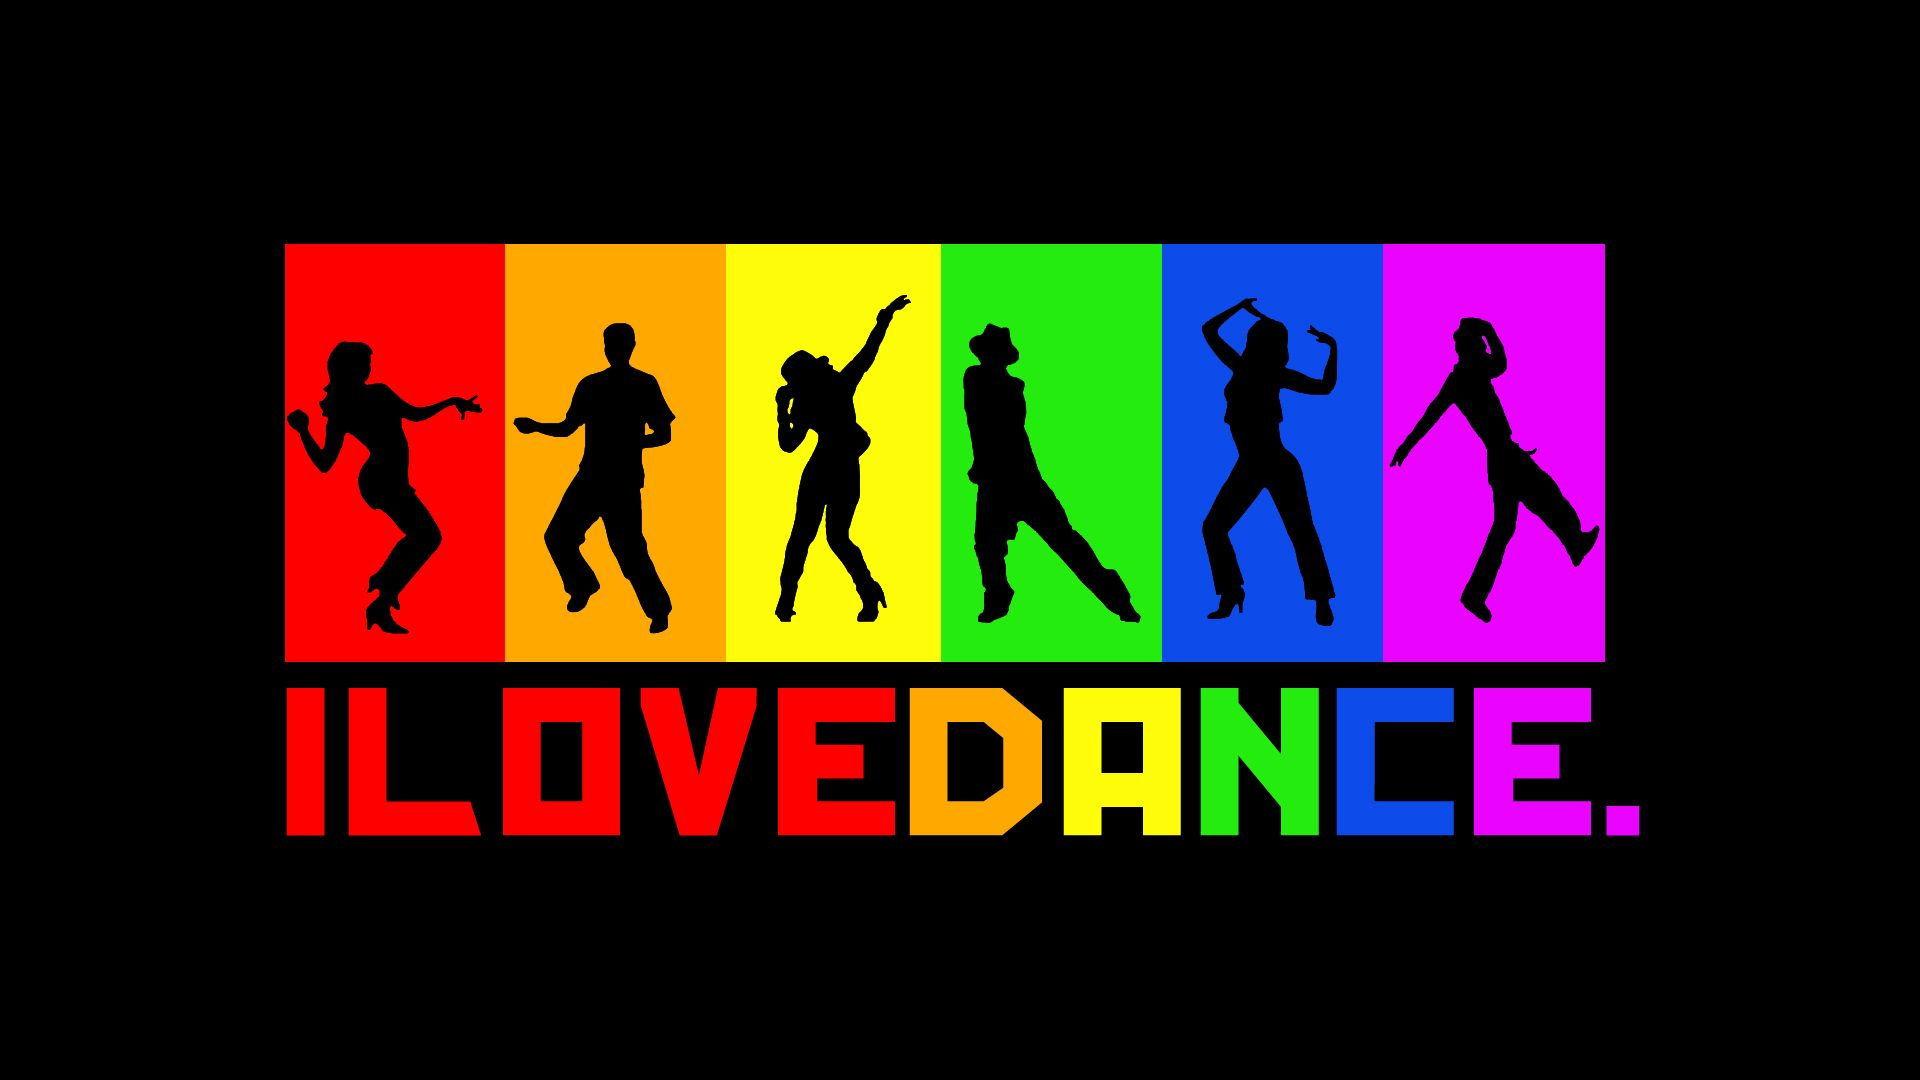 I Love Dance Wallpapers